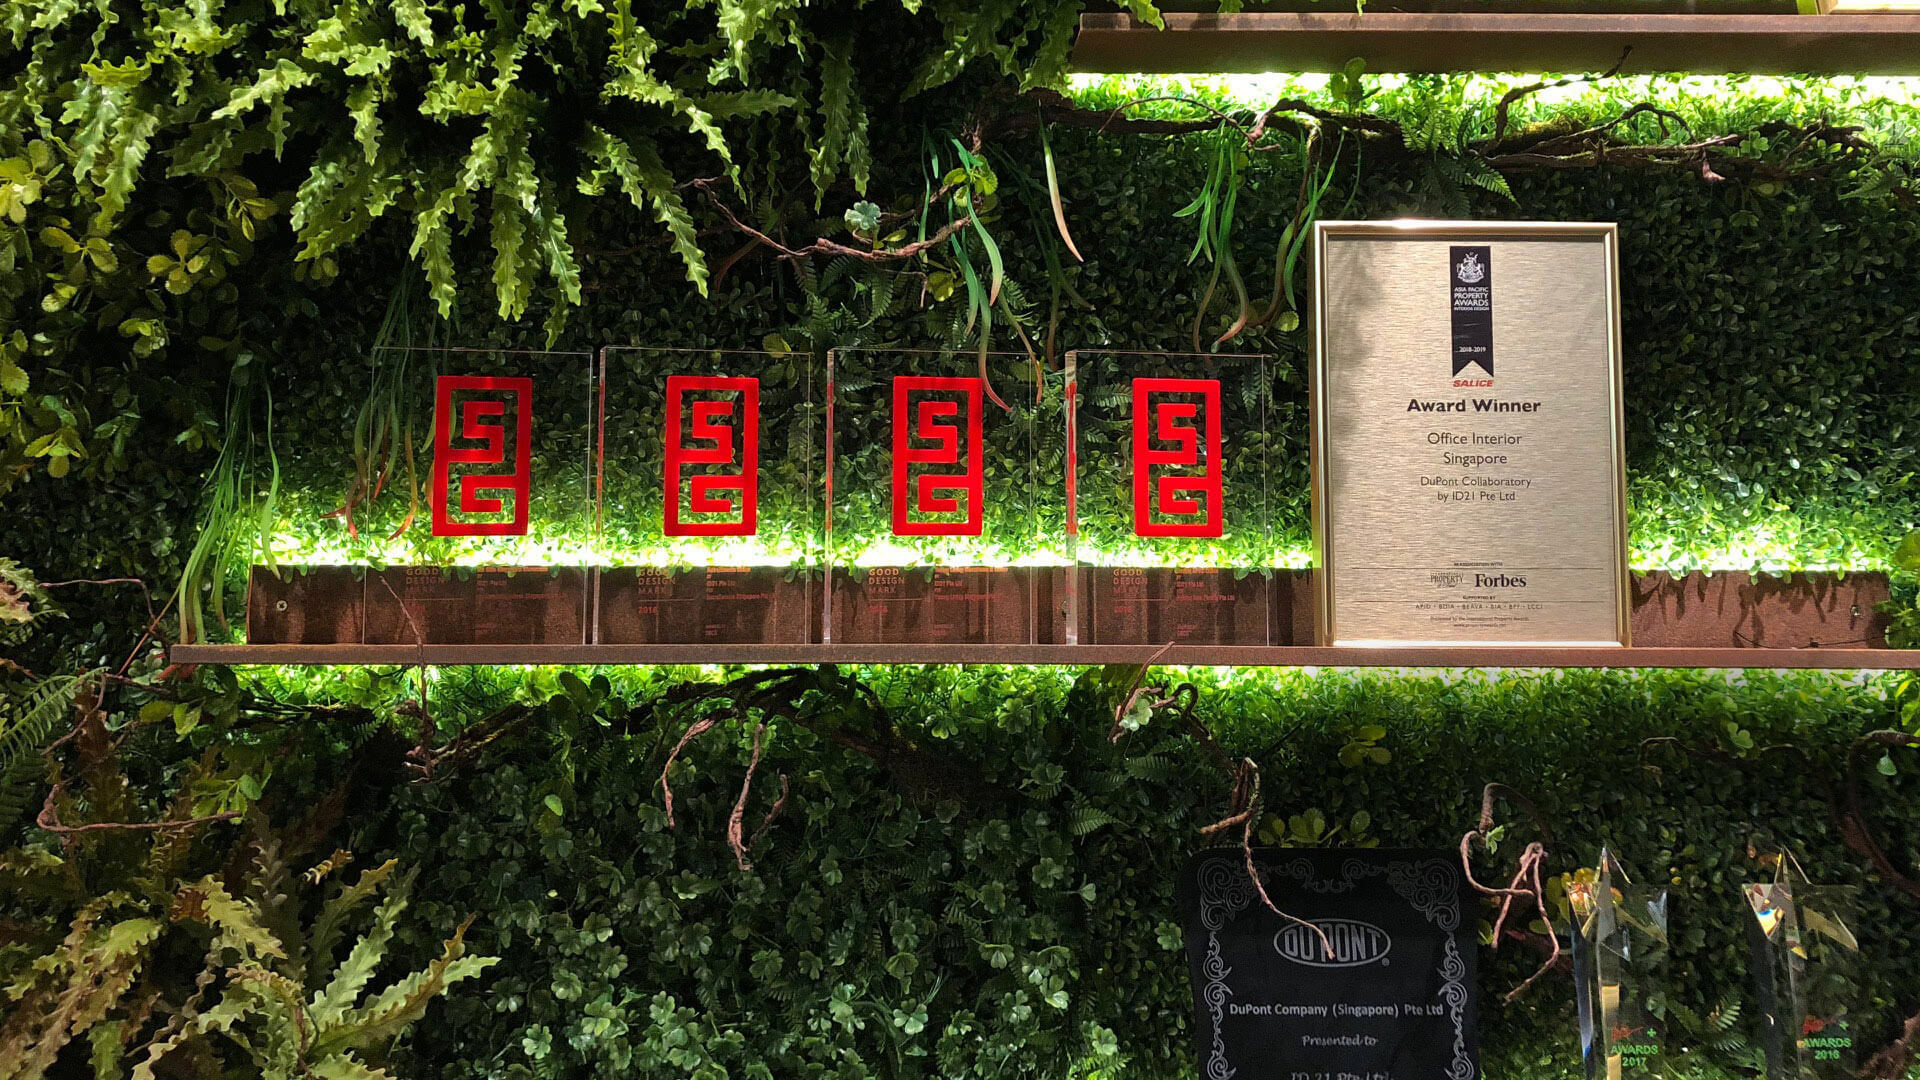 Marks of Distinction: Top Honours in Two Design Awards